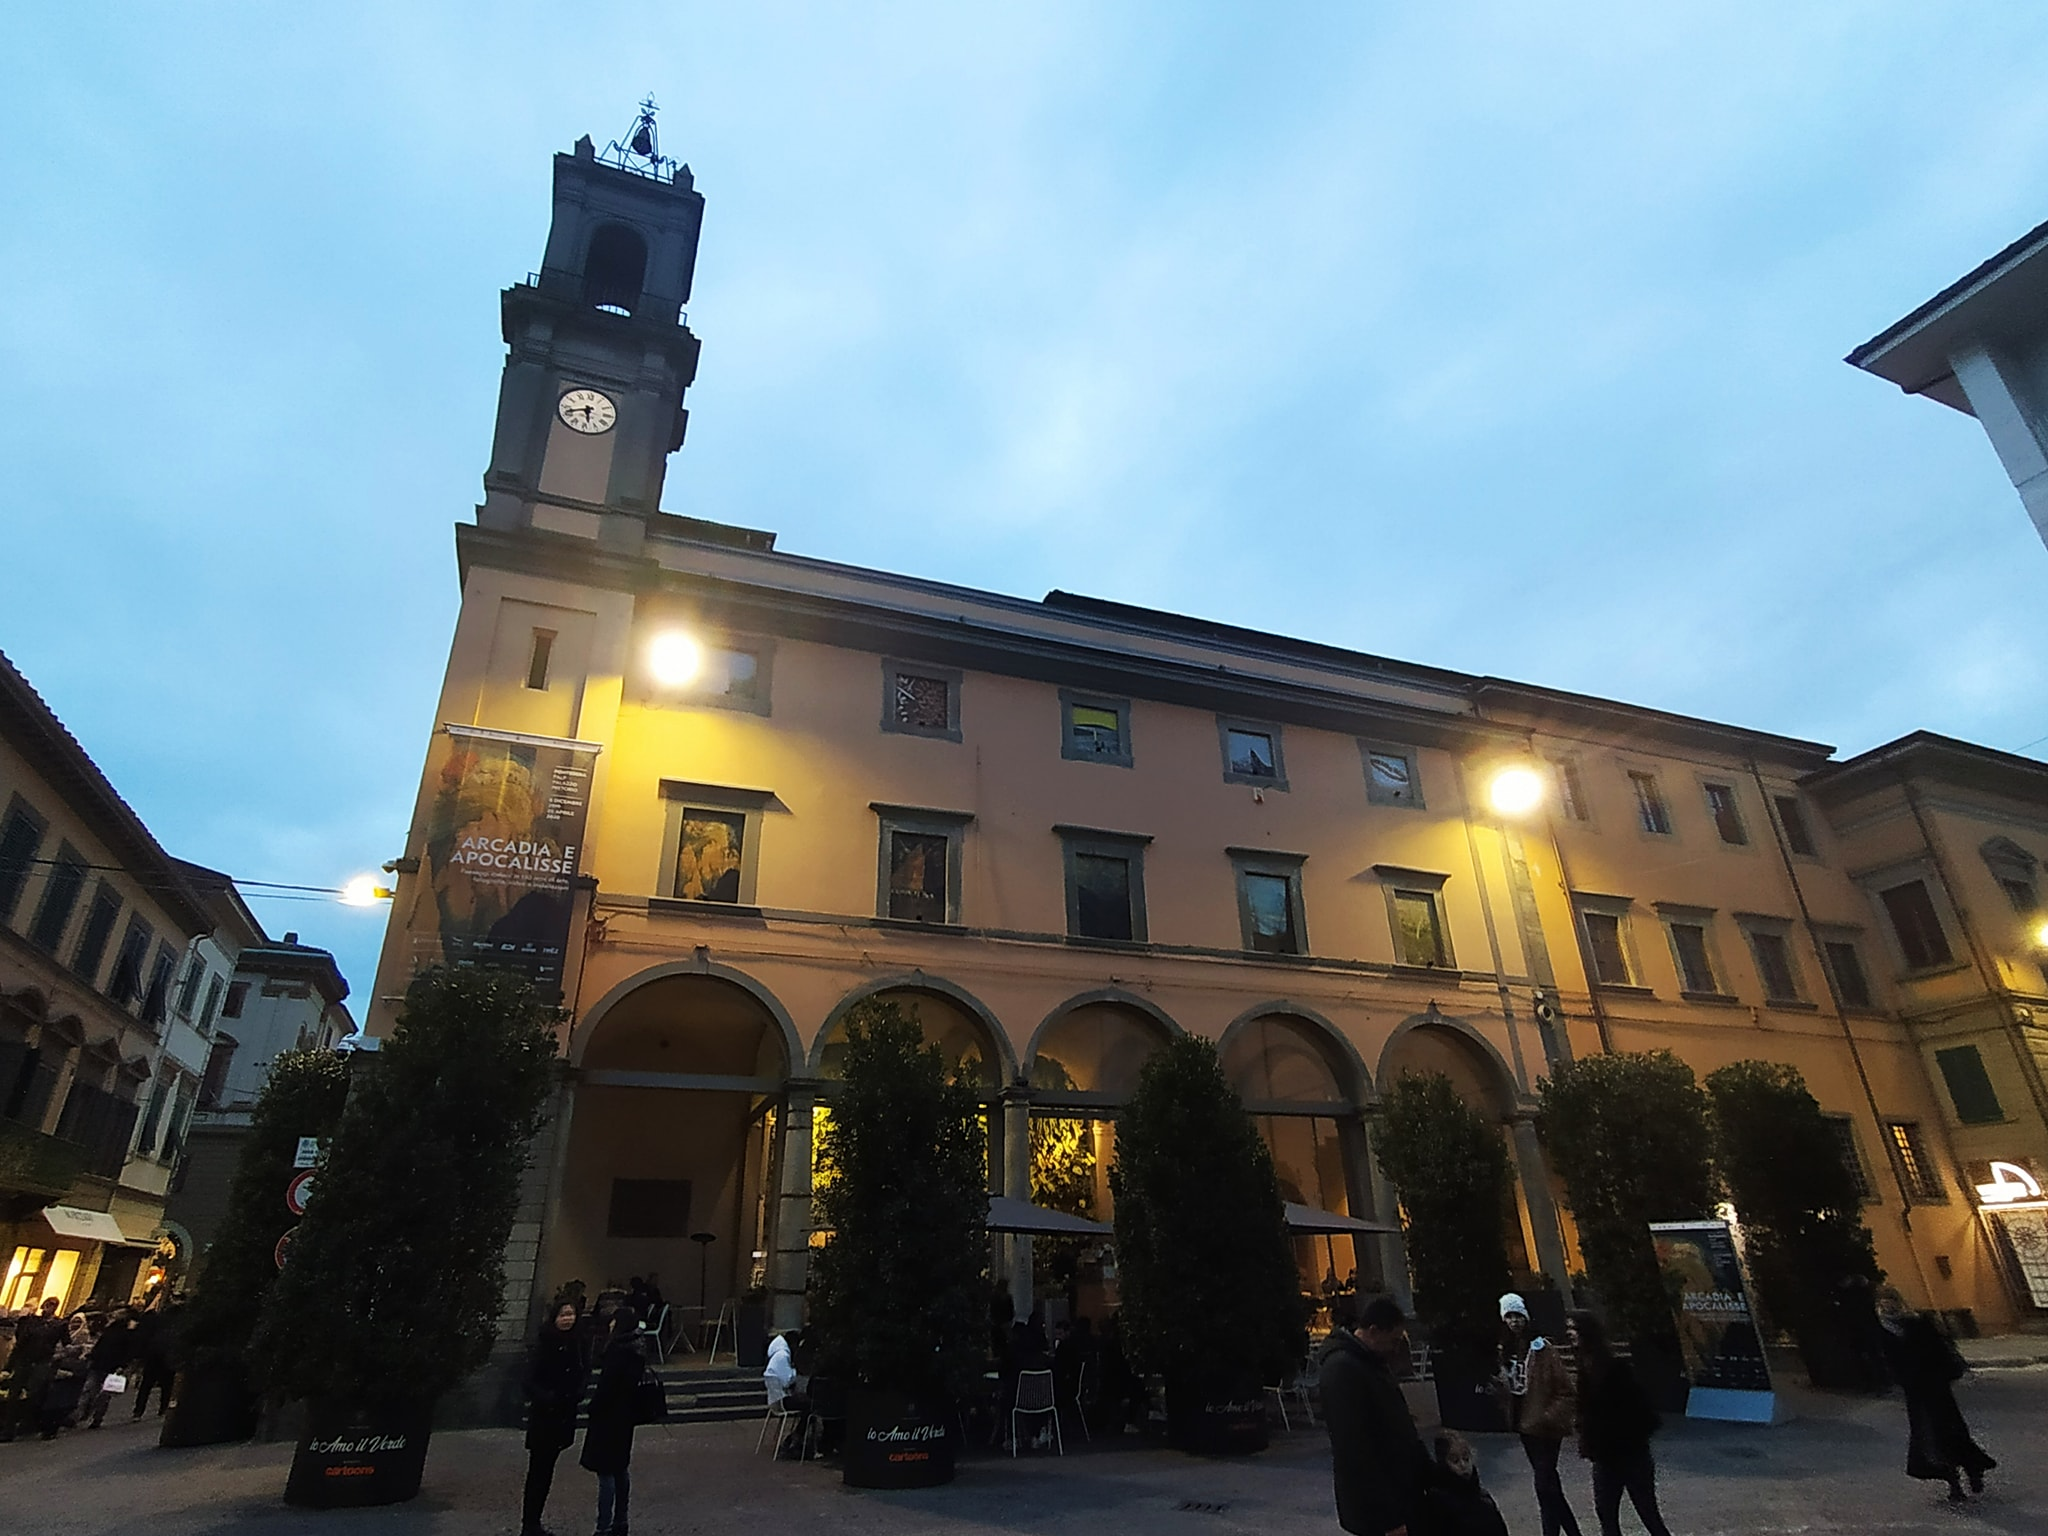 European Market, 14th edition | Pontedera